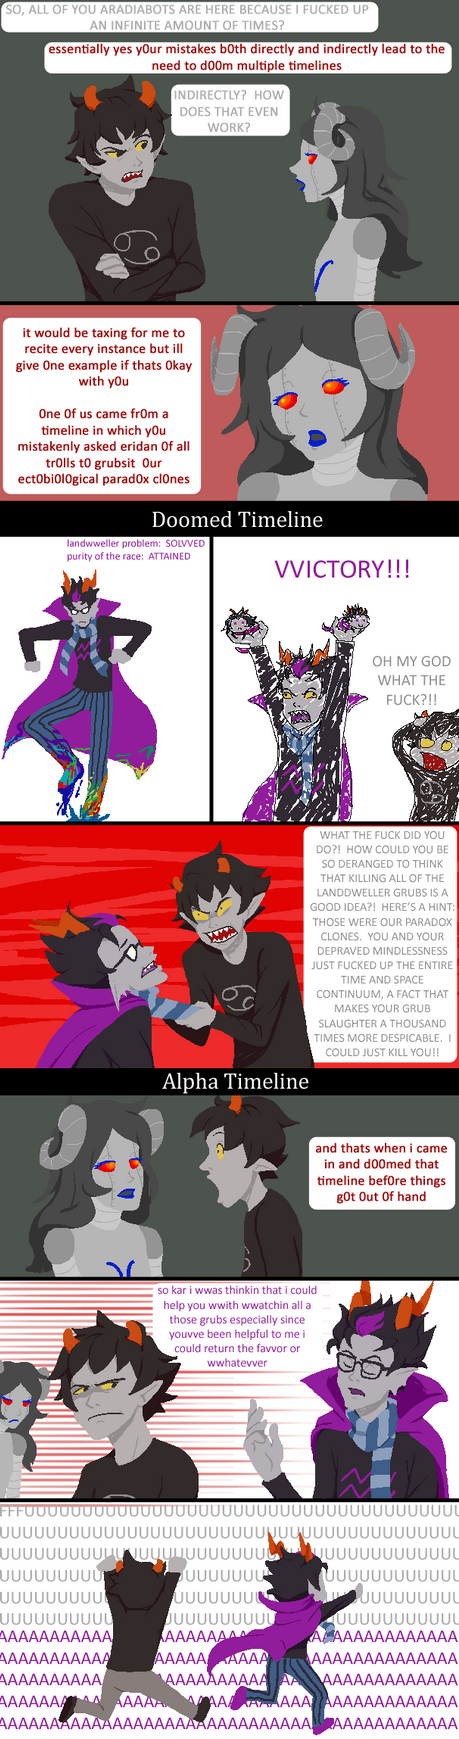 Another Reason Why Eridan Shouldn't Grubsit by Kamden